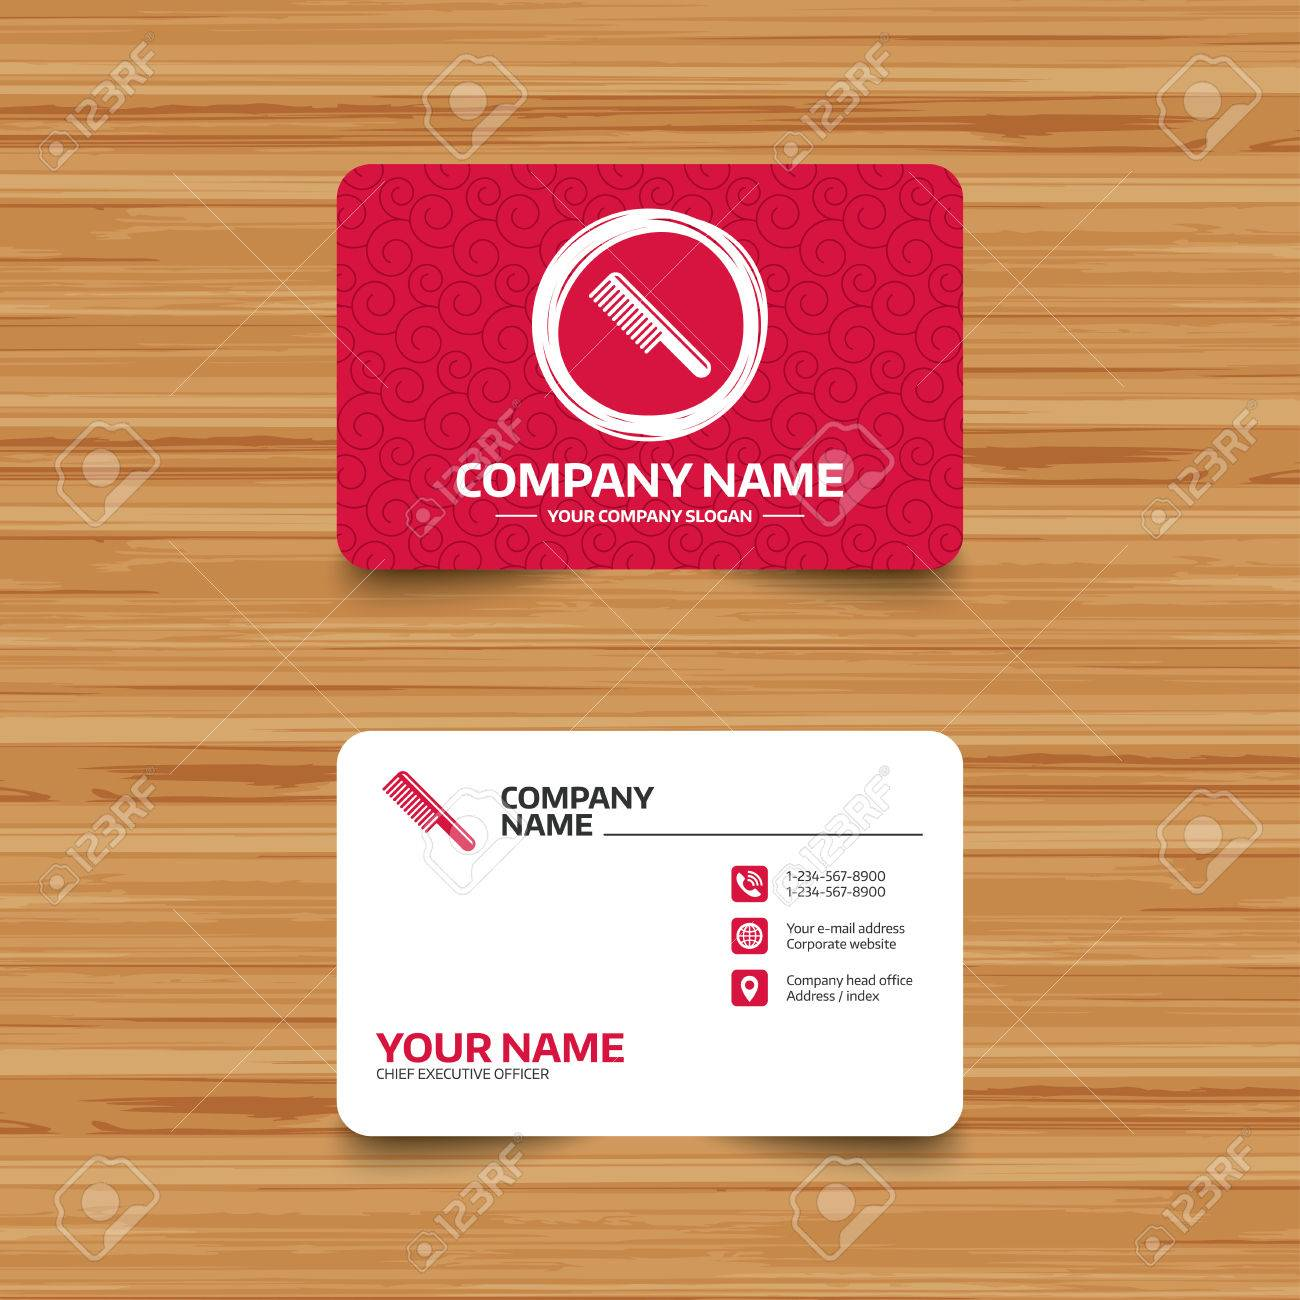 Barber business card choice image free business cards business card template with texture comb hair sign icon barber business card template with texture comb magicingreecefo Image collections